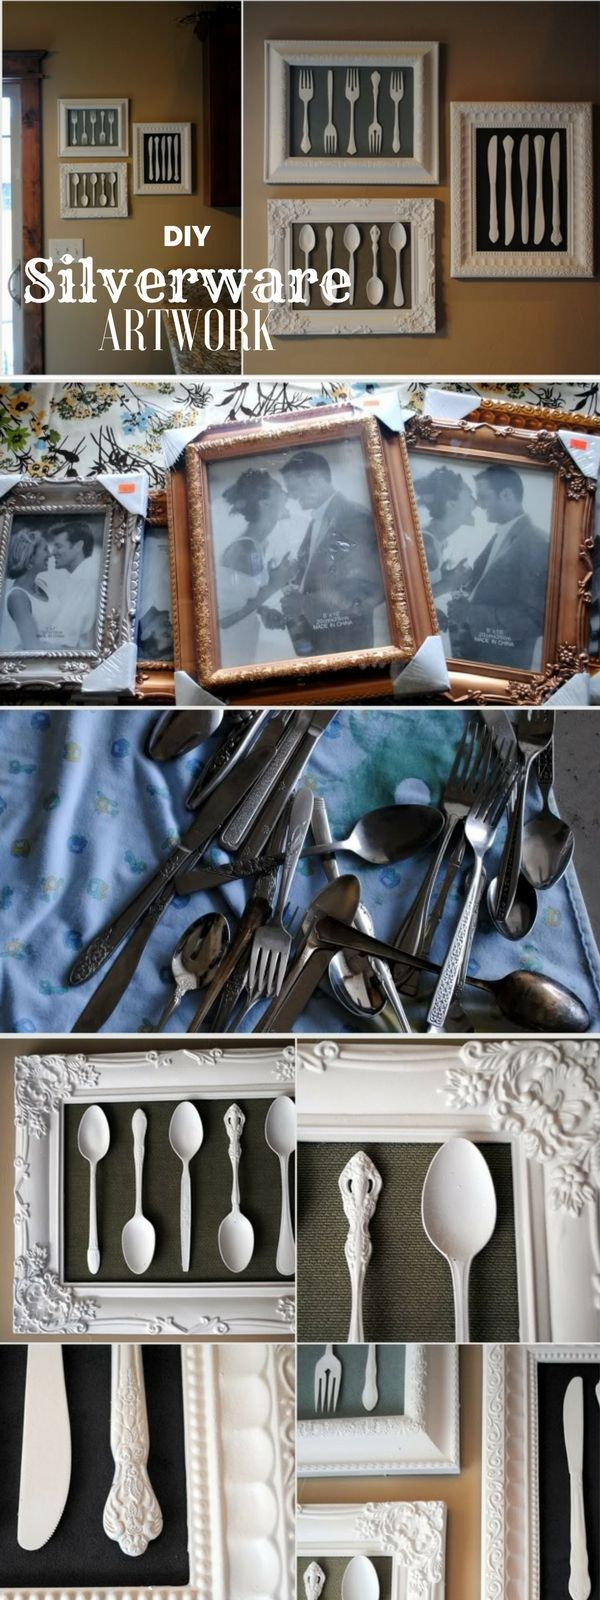 Check out the tutorial: #DIY Silverware Artwork @istandarddesign